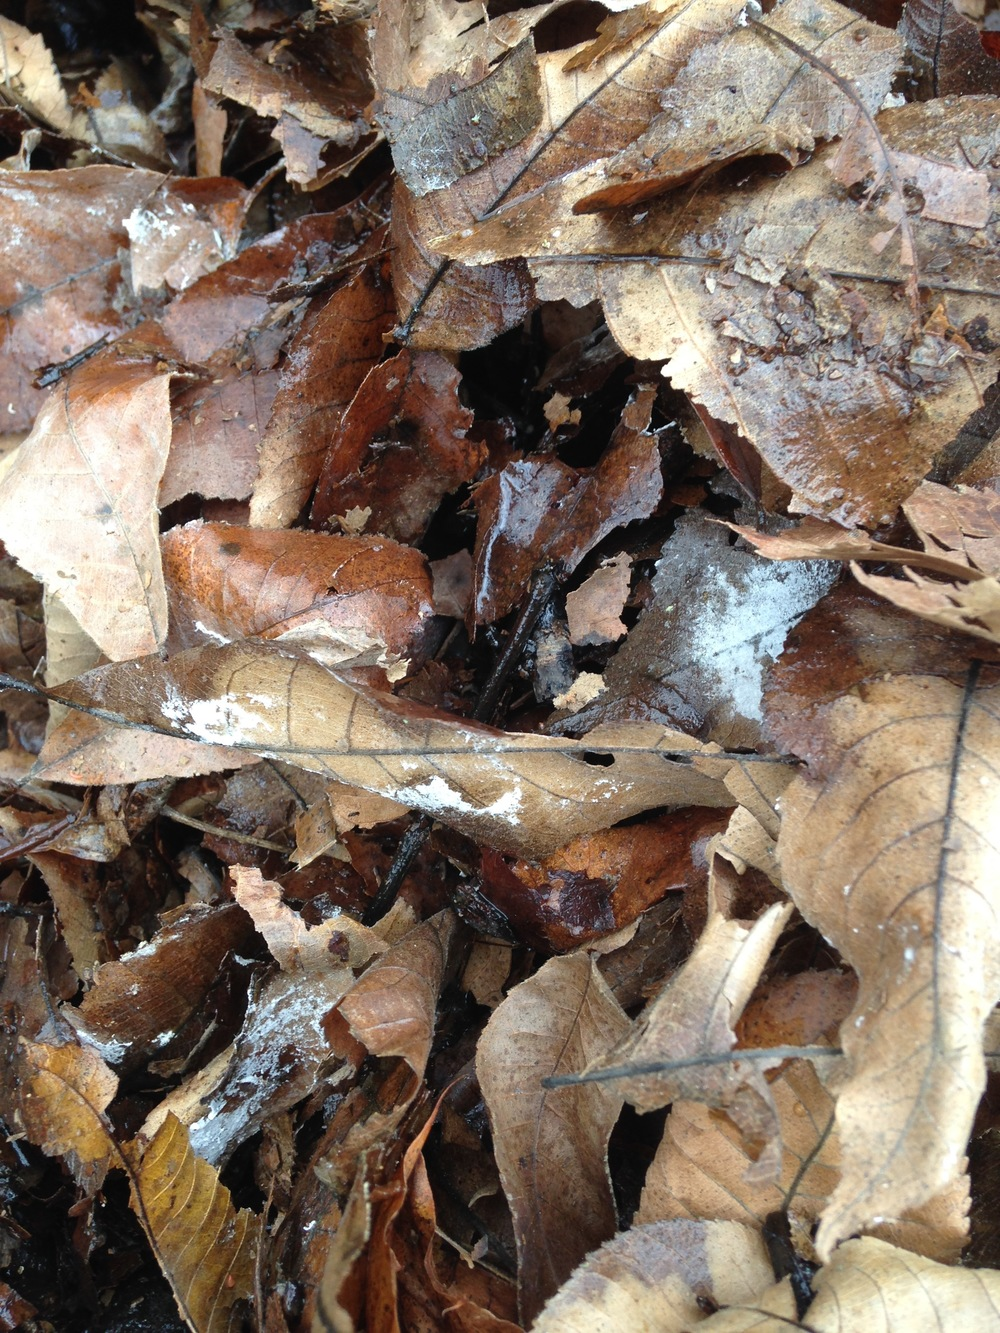 Mulched leaves, and some which blew into my leaf mulch pile, and are not chopped up, showing fungal activity (white ares) starting to decompose the leaves. This leaf mould stage is one step in the decomposition process and is particularly beneficial to perennial plants, shrubs and trees.